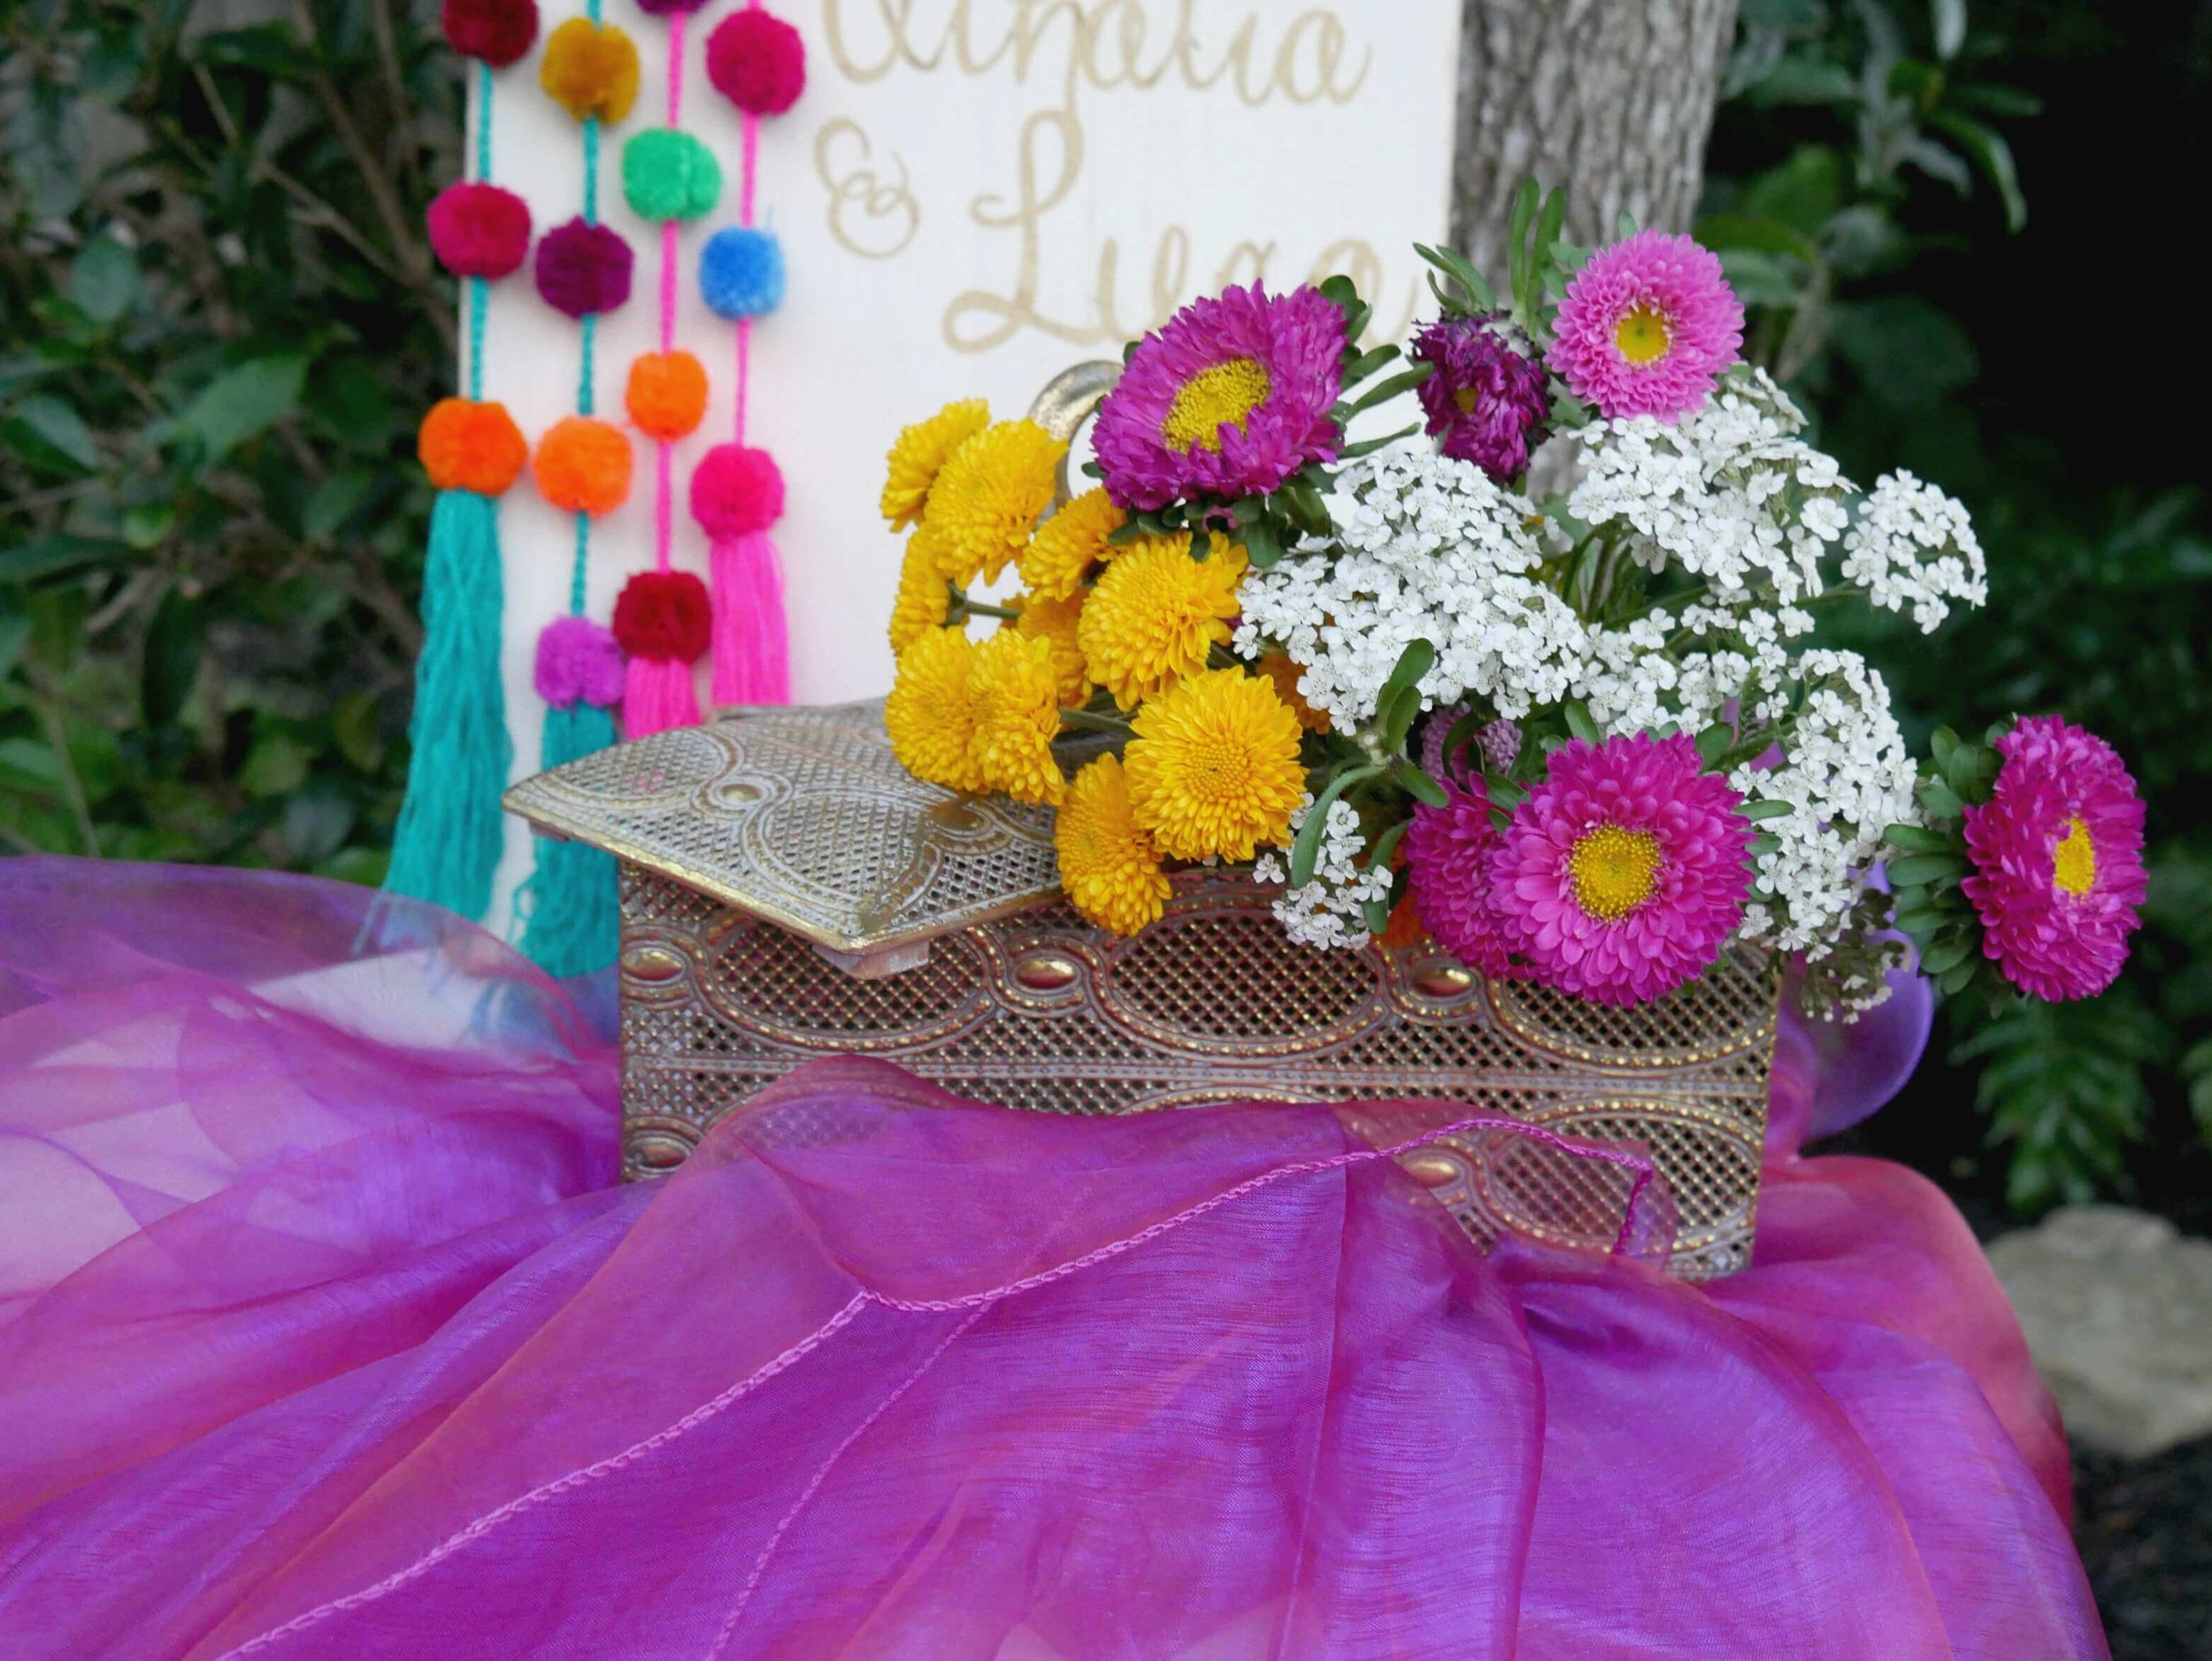 Lush tones of yellow and purples for this Gypsy themed engagement party. Styled by Mint Event Design in Austin Texas www.minteventdesign.com #engagementideas #bohochic